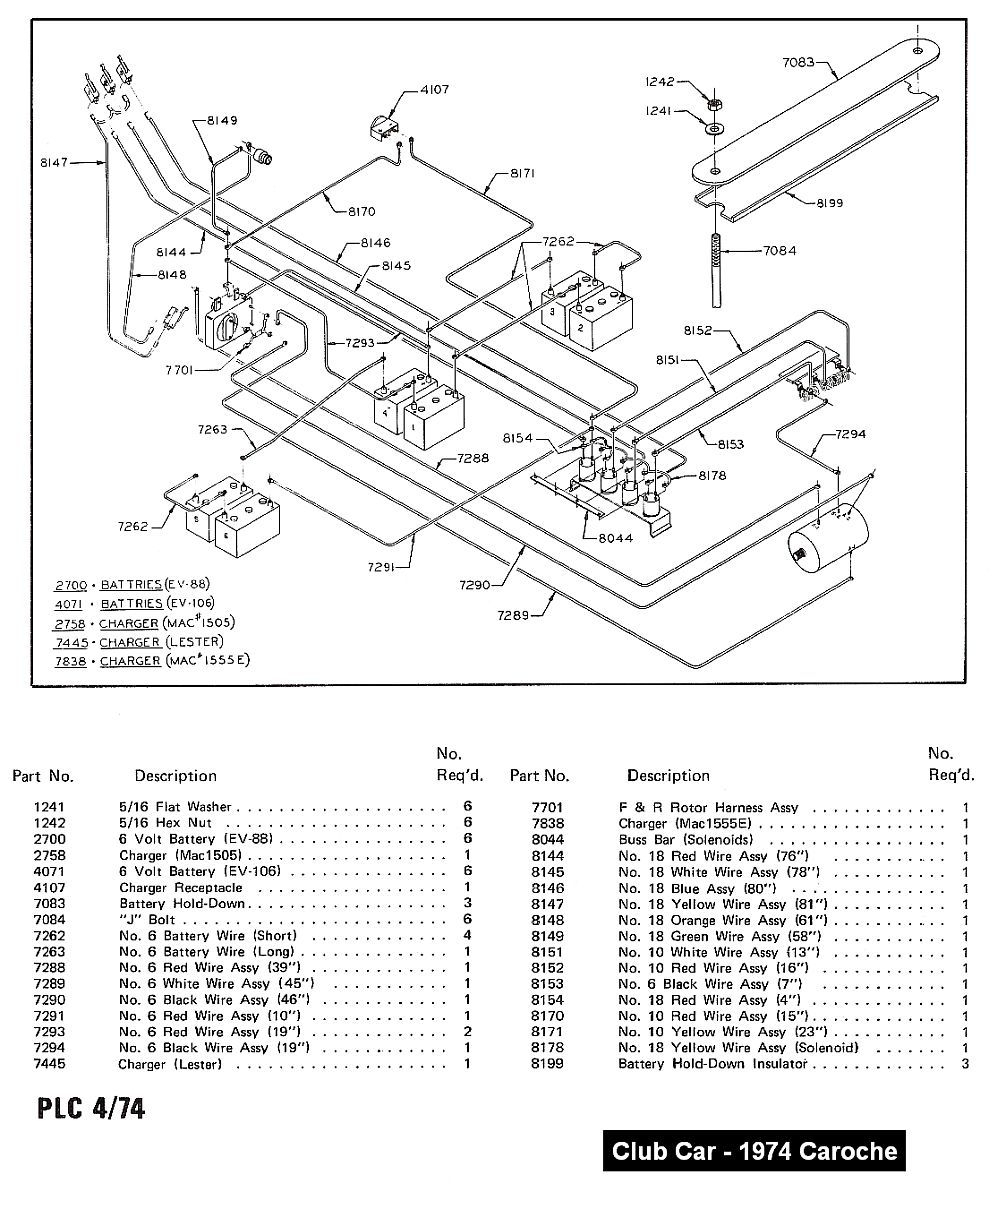 WRG-0526] Club Car Wiring Diagram 01 on 1982 jeep wiring diagram, 1982 club car battery, 1999 club car battery diagram, 1982 club car accessories, 1982 toyota wiring diagram, 98 club car parts diagram, club car precedent parts diagram, golf car wiring diagram, 1992 club car parts diagram, 1982 husqvarna wiring diagram, club car electric motor diagram, 1982 gmc wiring diagram, 1982 harley davidson wiring diagram, 1982 club car steering, 1982 club car parts list,